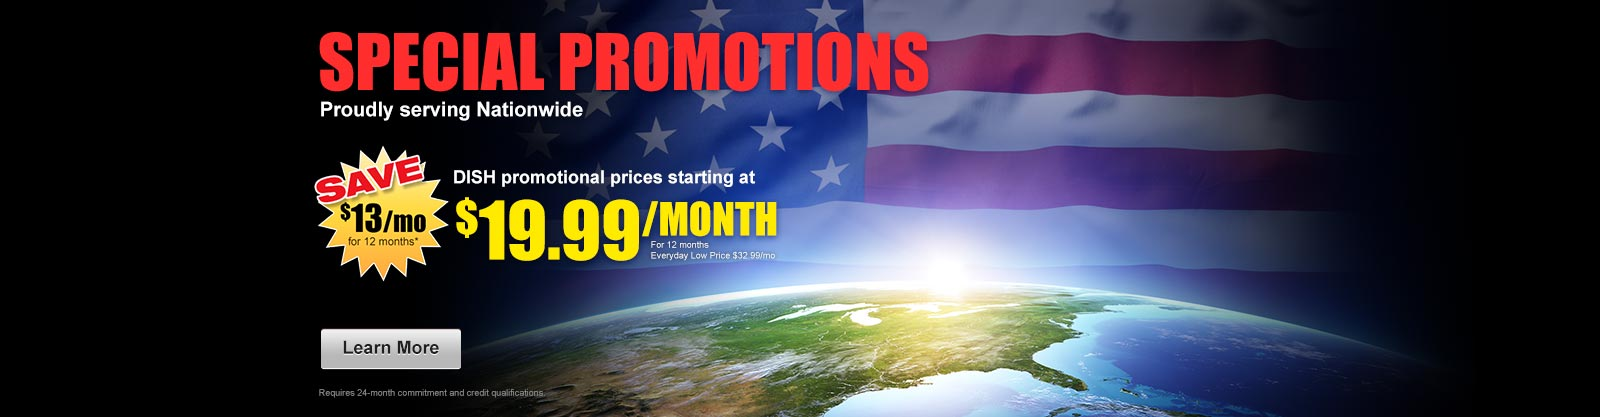 Special Promotions, Nationwide, Dish Network, Cable TV, satellite TV, DishNet,Dish Network